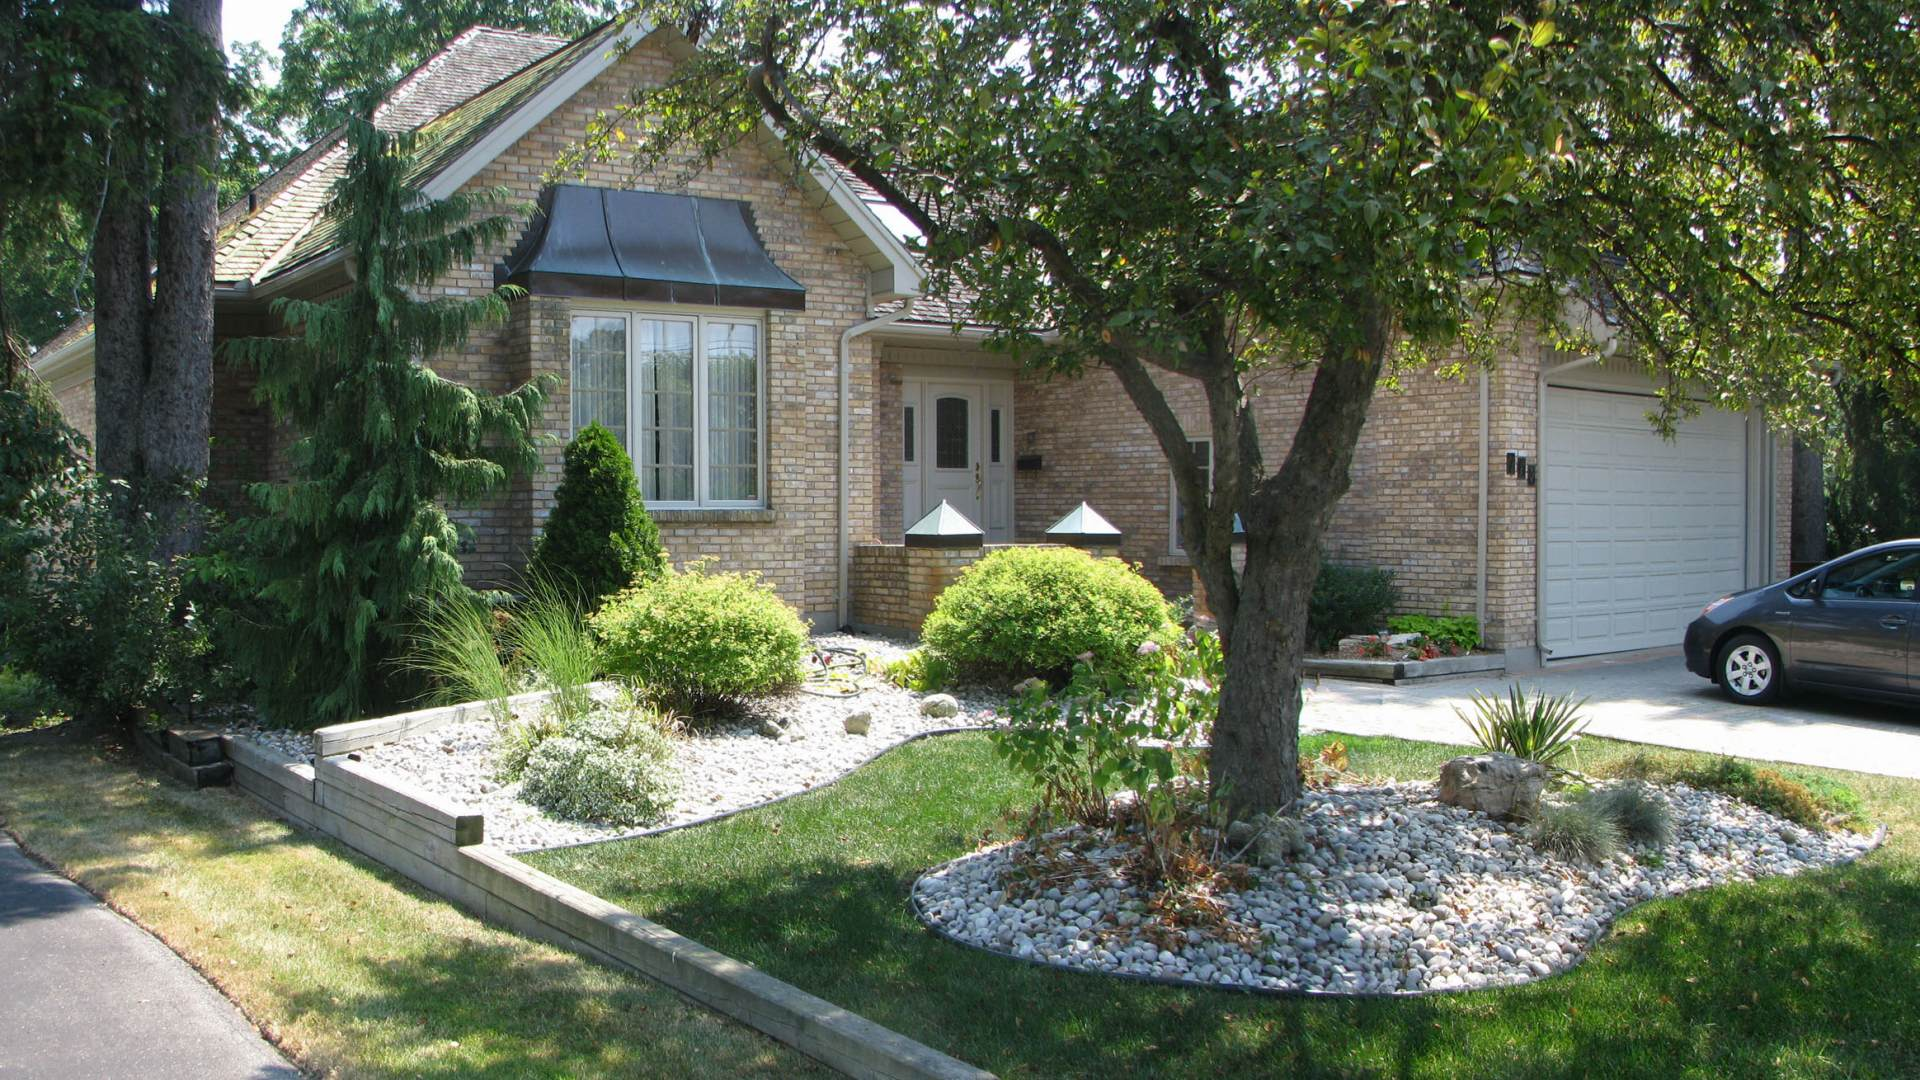 Work front yard redesign old south landscape professionals for Redesigning the front of your house